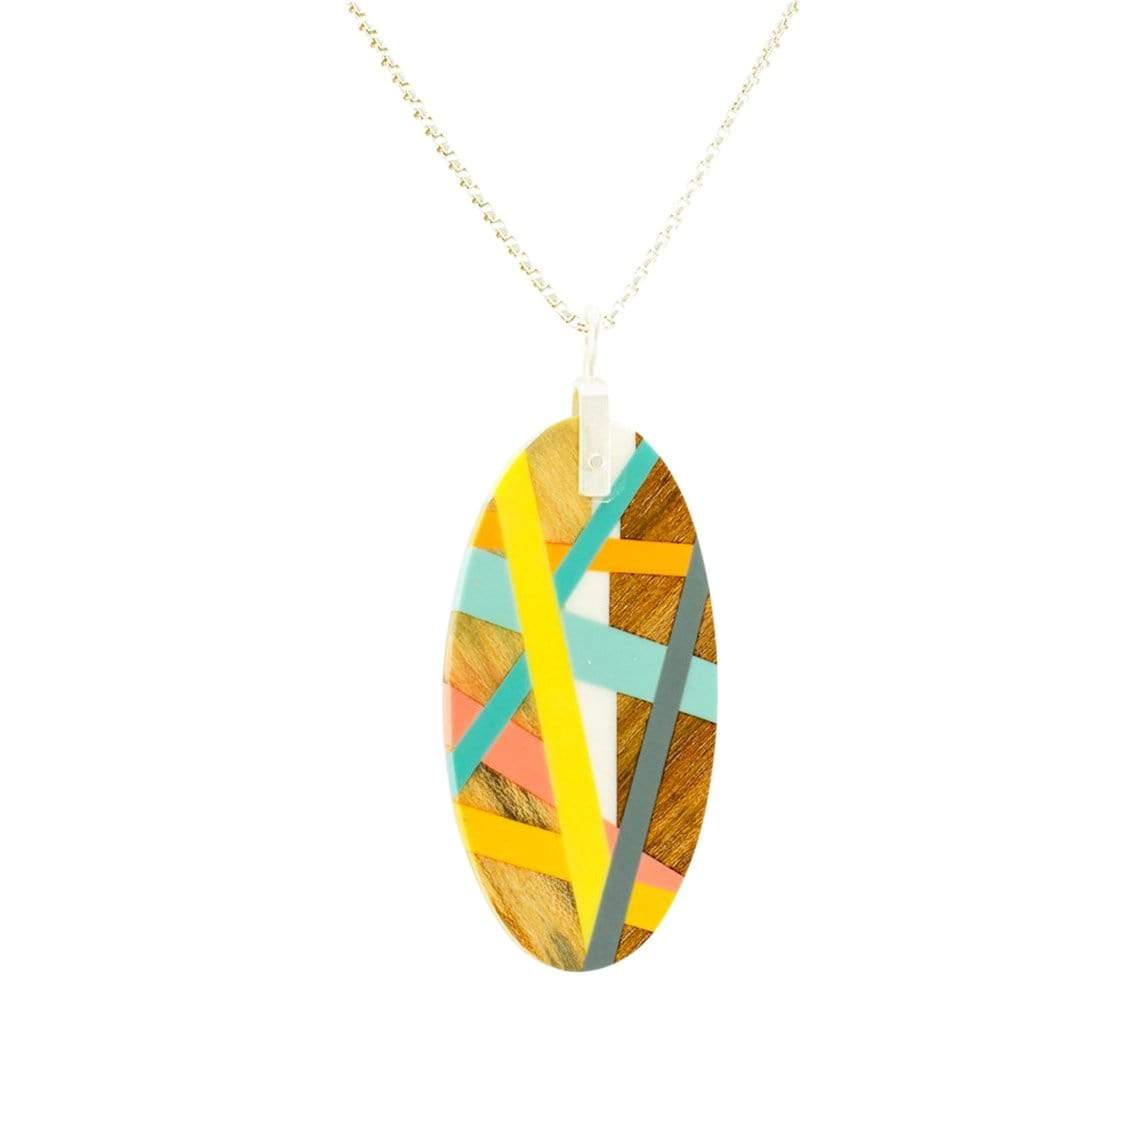 Laura Jaklitsch Jewelry Necklaces 3-Wood Bright Finish Meyer Lemon Necklace with Inlay